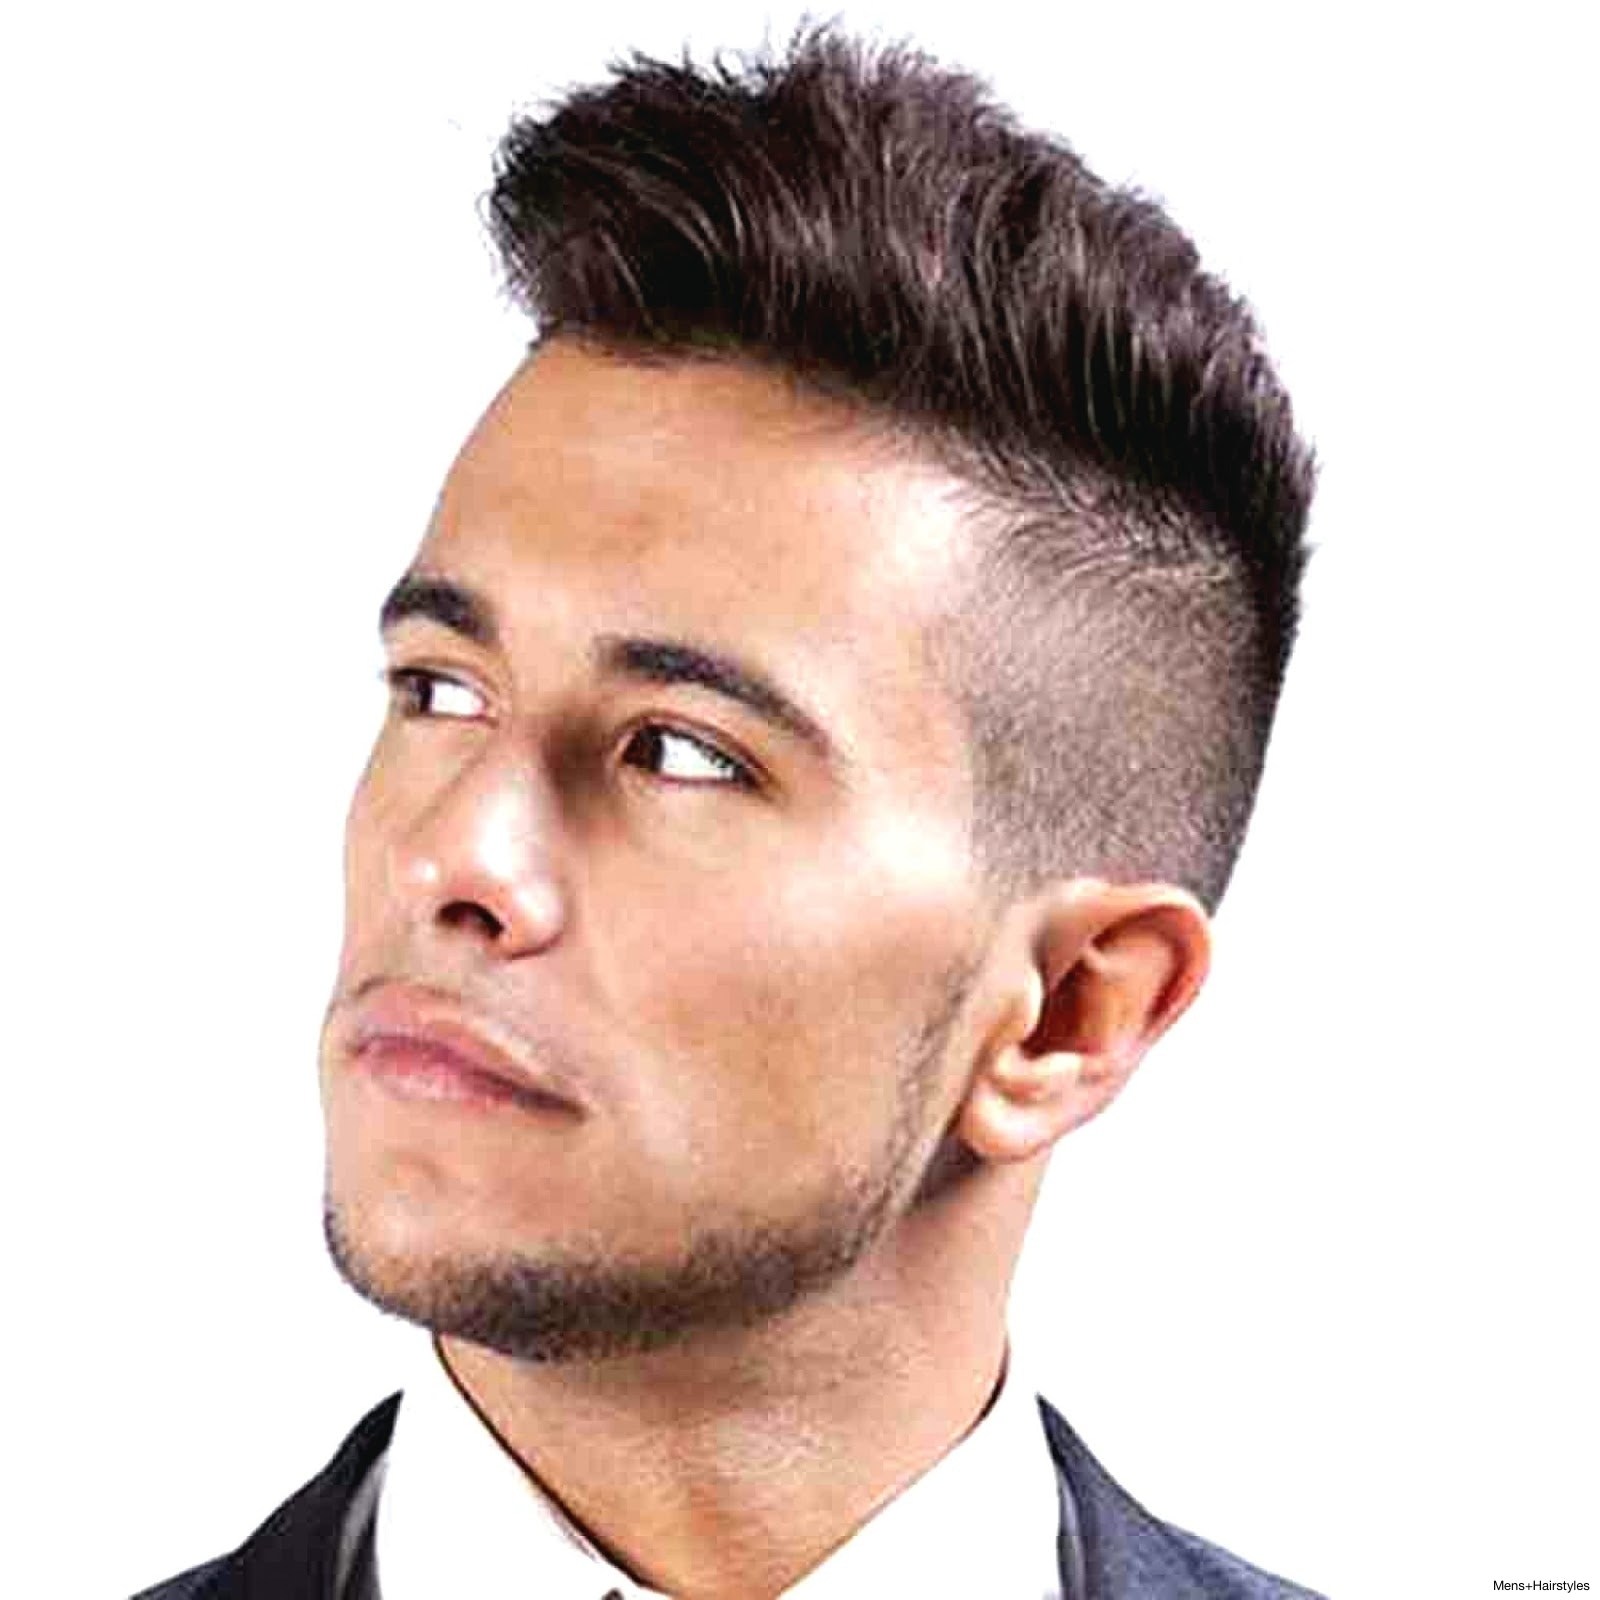 Modern Haircuts For Men Fashions Style And Hairstyle